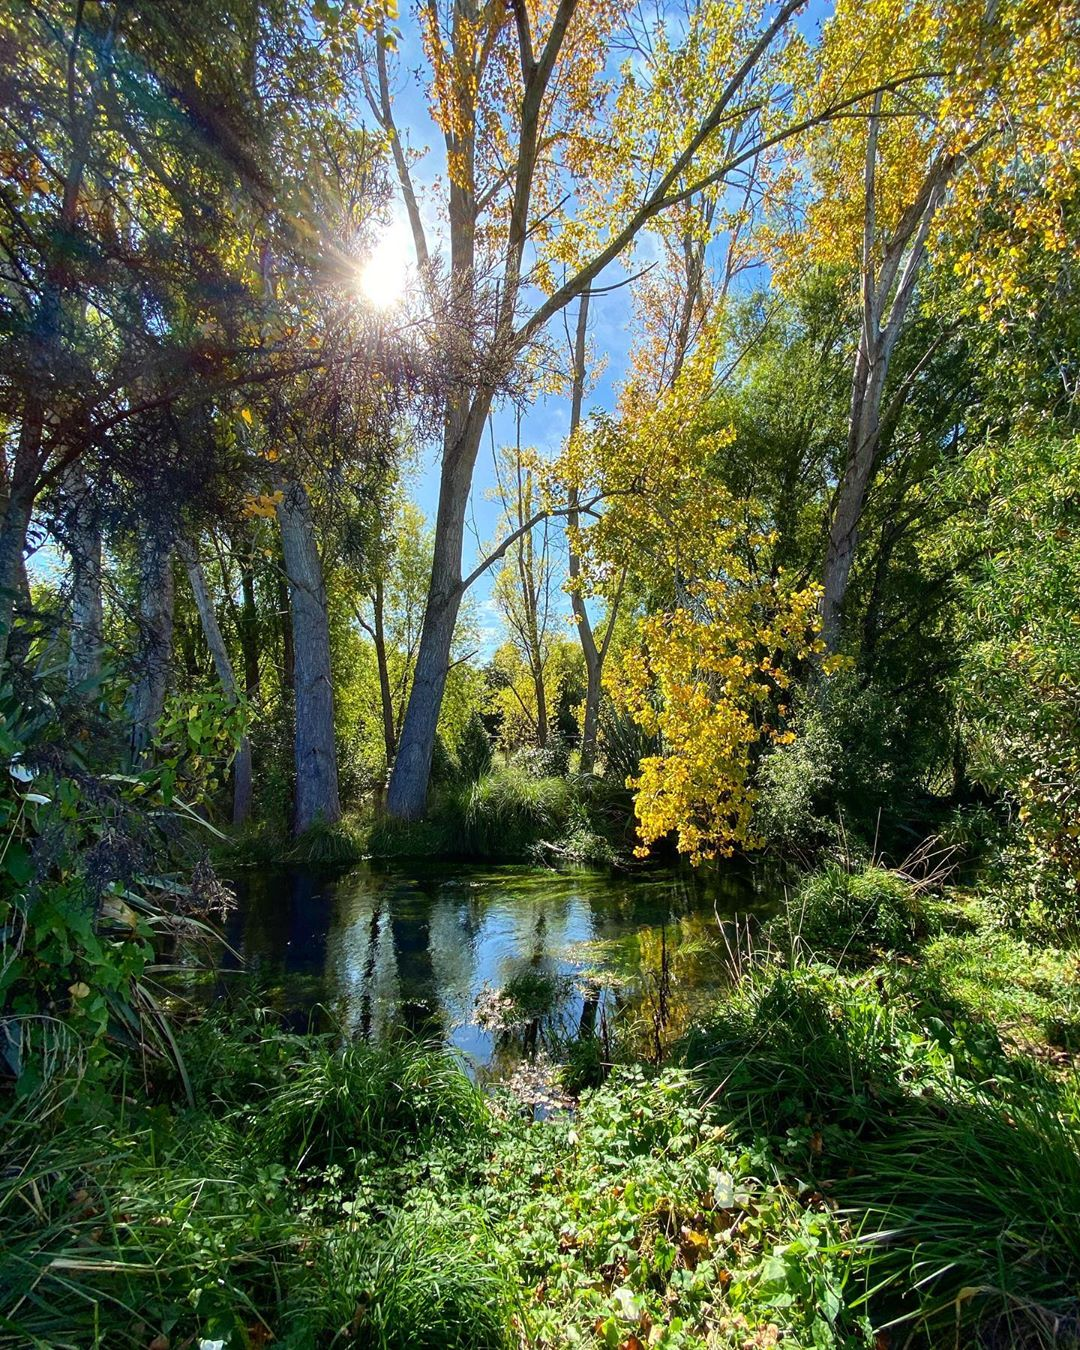 Styx river flowing through trees in the Styx Mill Reserve on a sunny autumn day in Christchurch, New Zealand